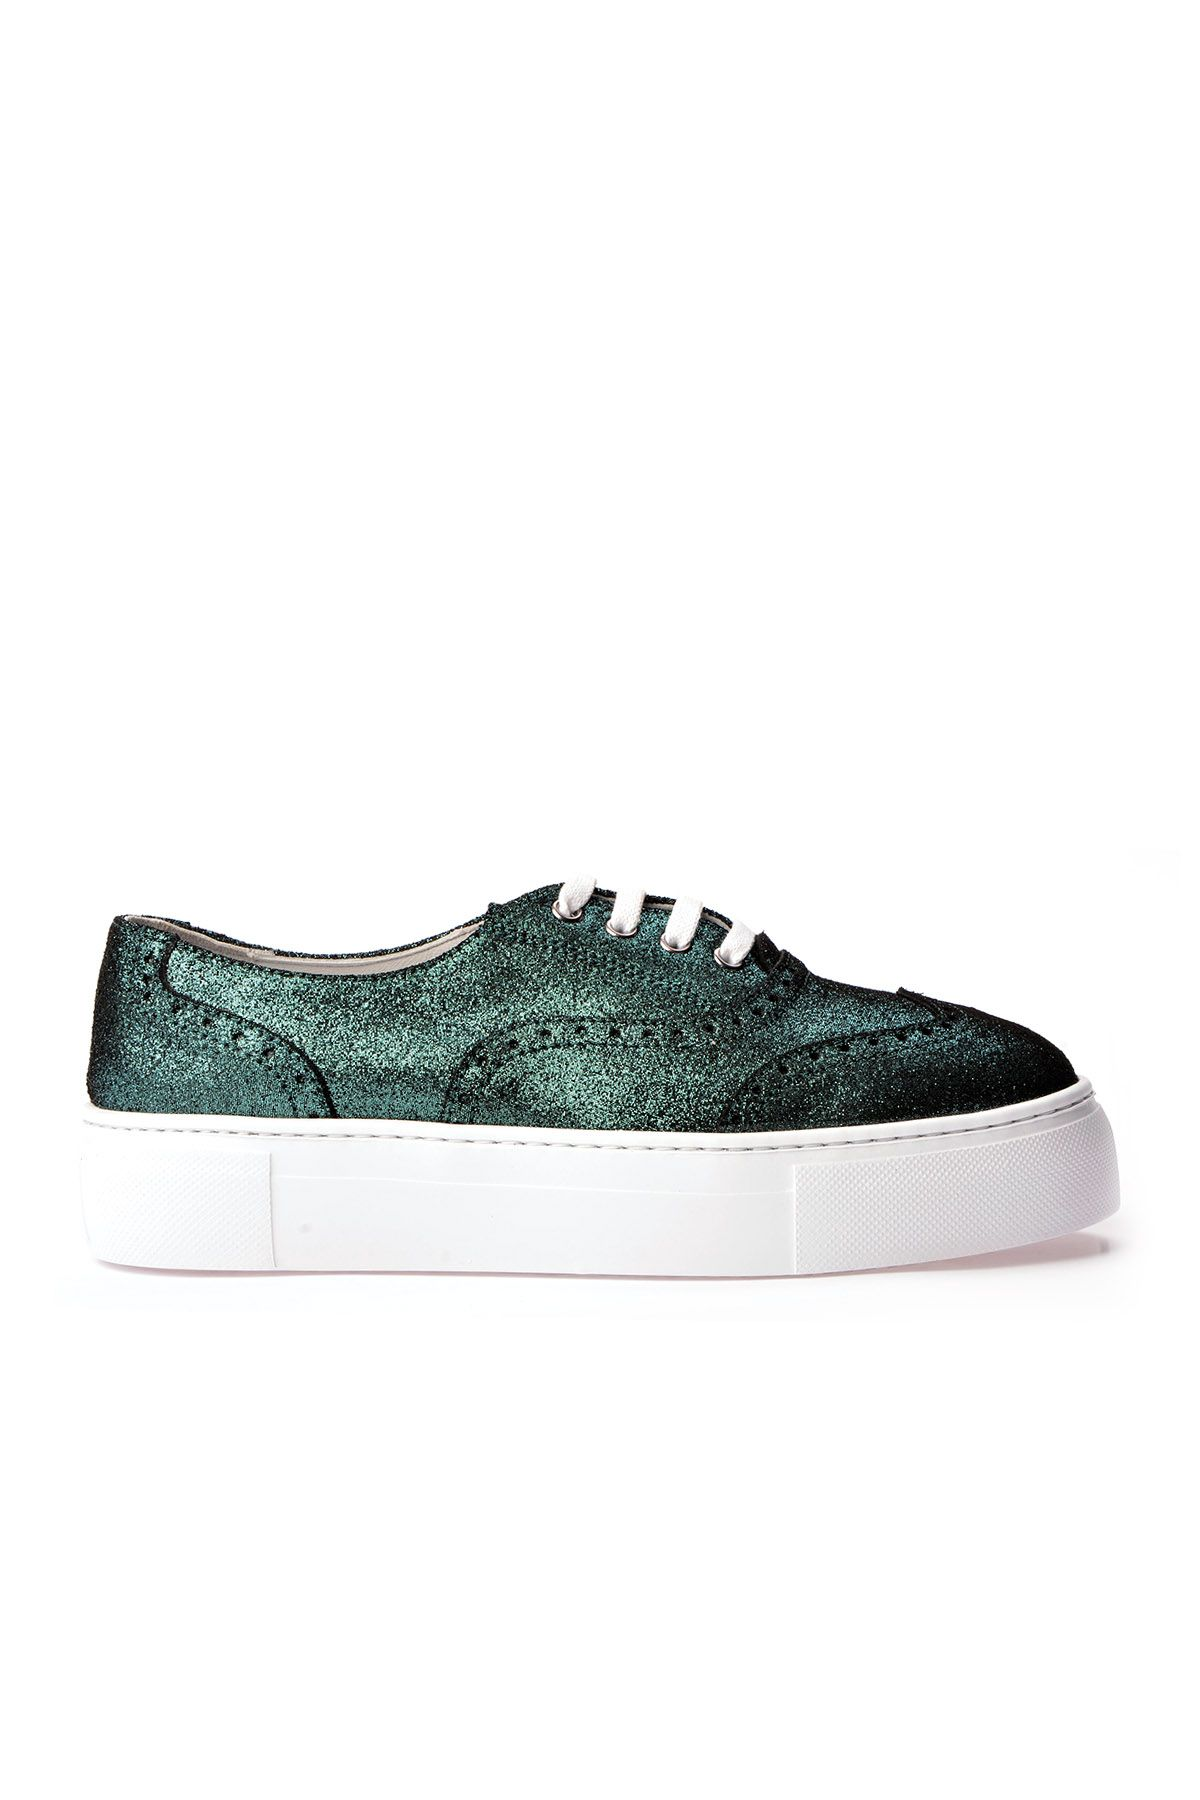 Pegia Chatalet Oxford Shoes From Genuine Leather REC-014 Green